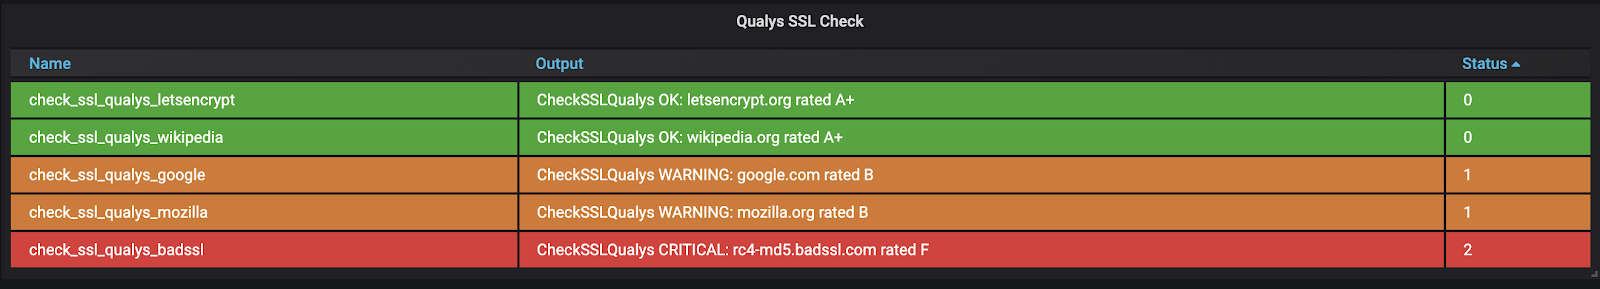 Sensu dashboard showing SSL Labs site score